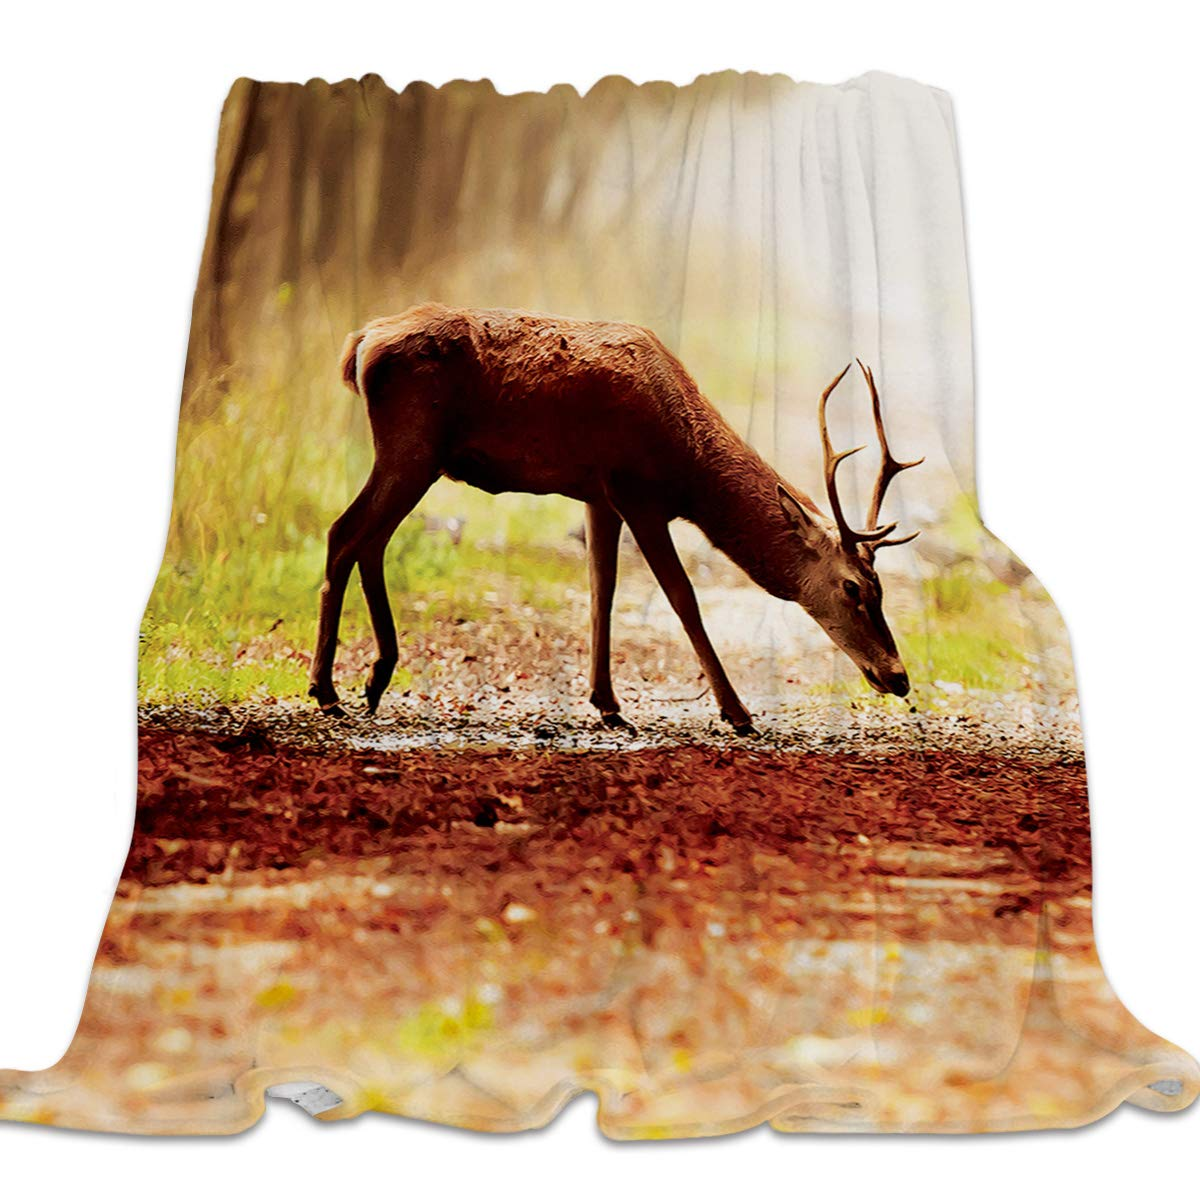 Deer13yag0196 39x49inch=100x125cm 49x59 Inch Flannel Fleece Bed Blanket Soft ThrowBlankets for Girls Boys,Simply Stripe Black and White Pattern,Lightweight Warm Kids Blankets for Bedroom Living Room Sofa Couch Home Decor